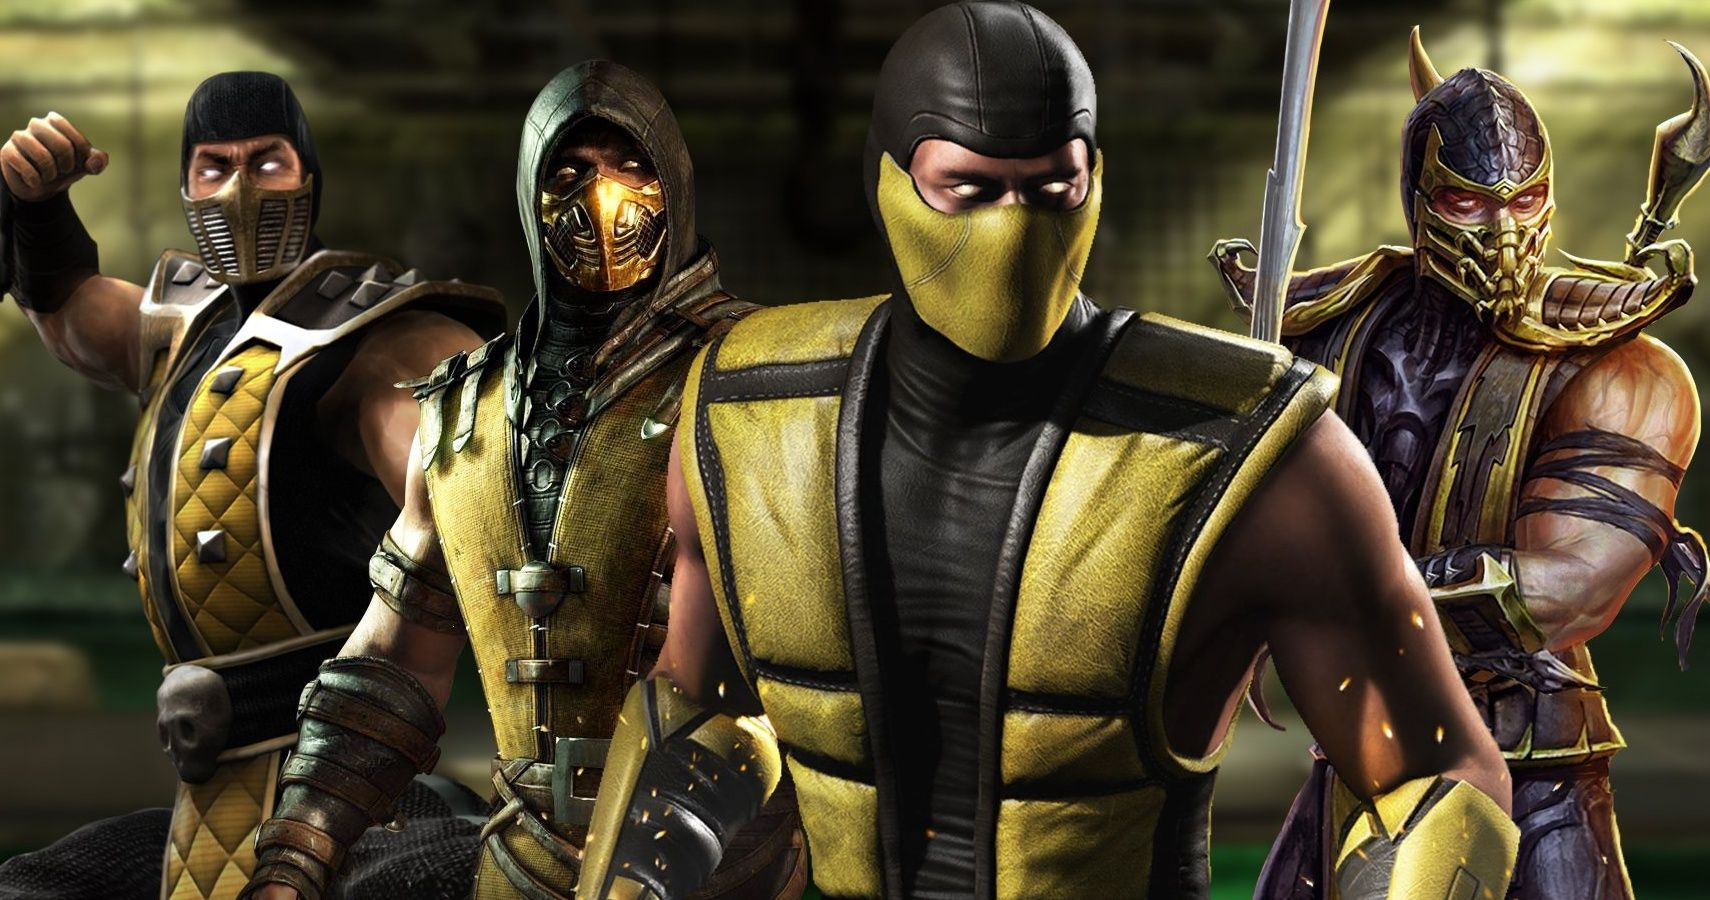 Mortal Kombat Scorpion S 10 Best Outfits Ranked Game Rant